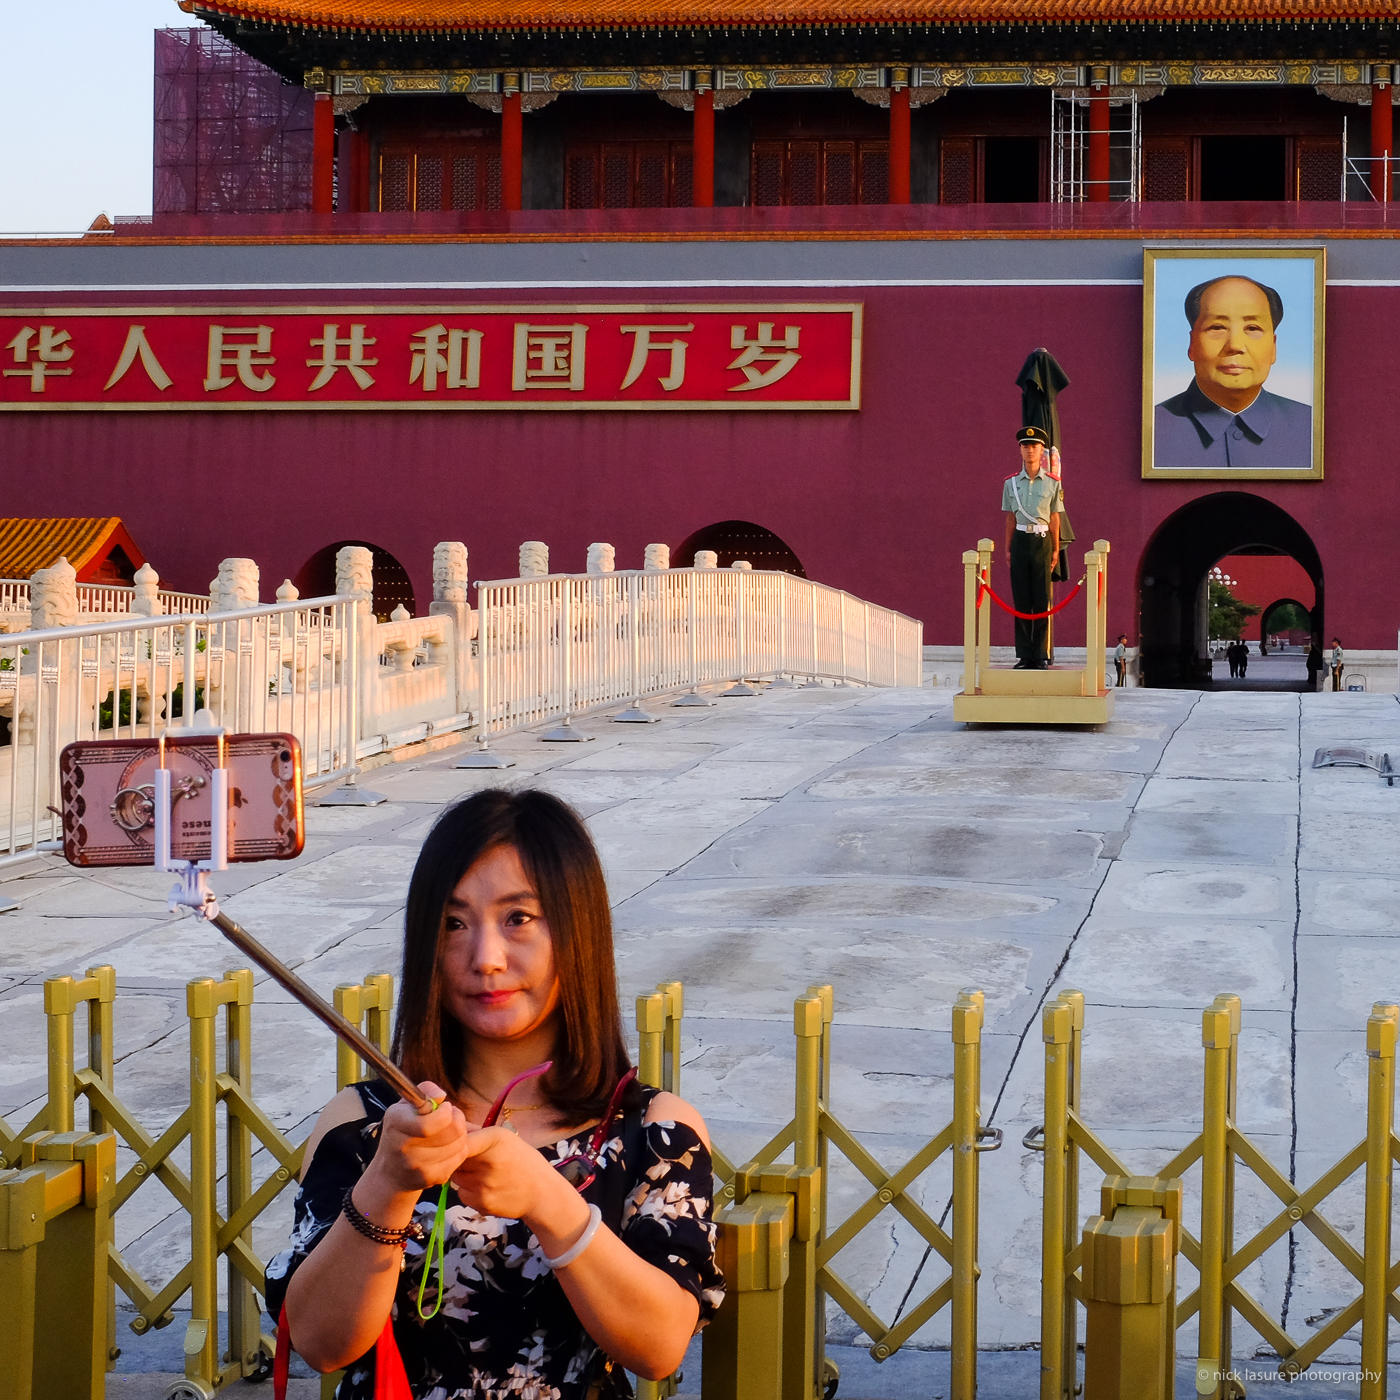 Land of the Selfie, not sure Mao would approve | Fuji X100T